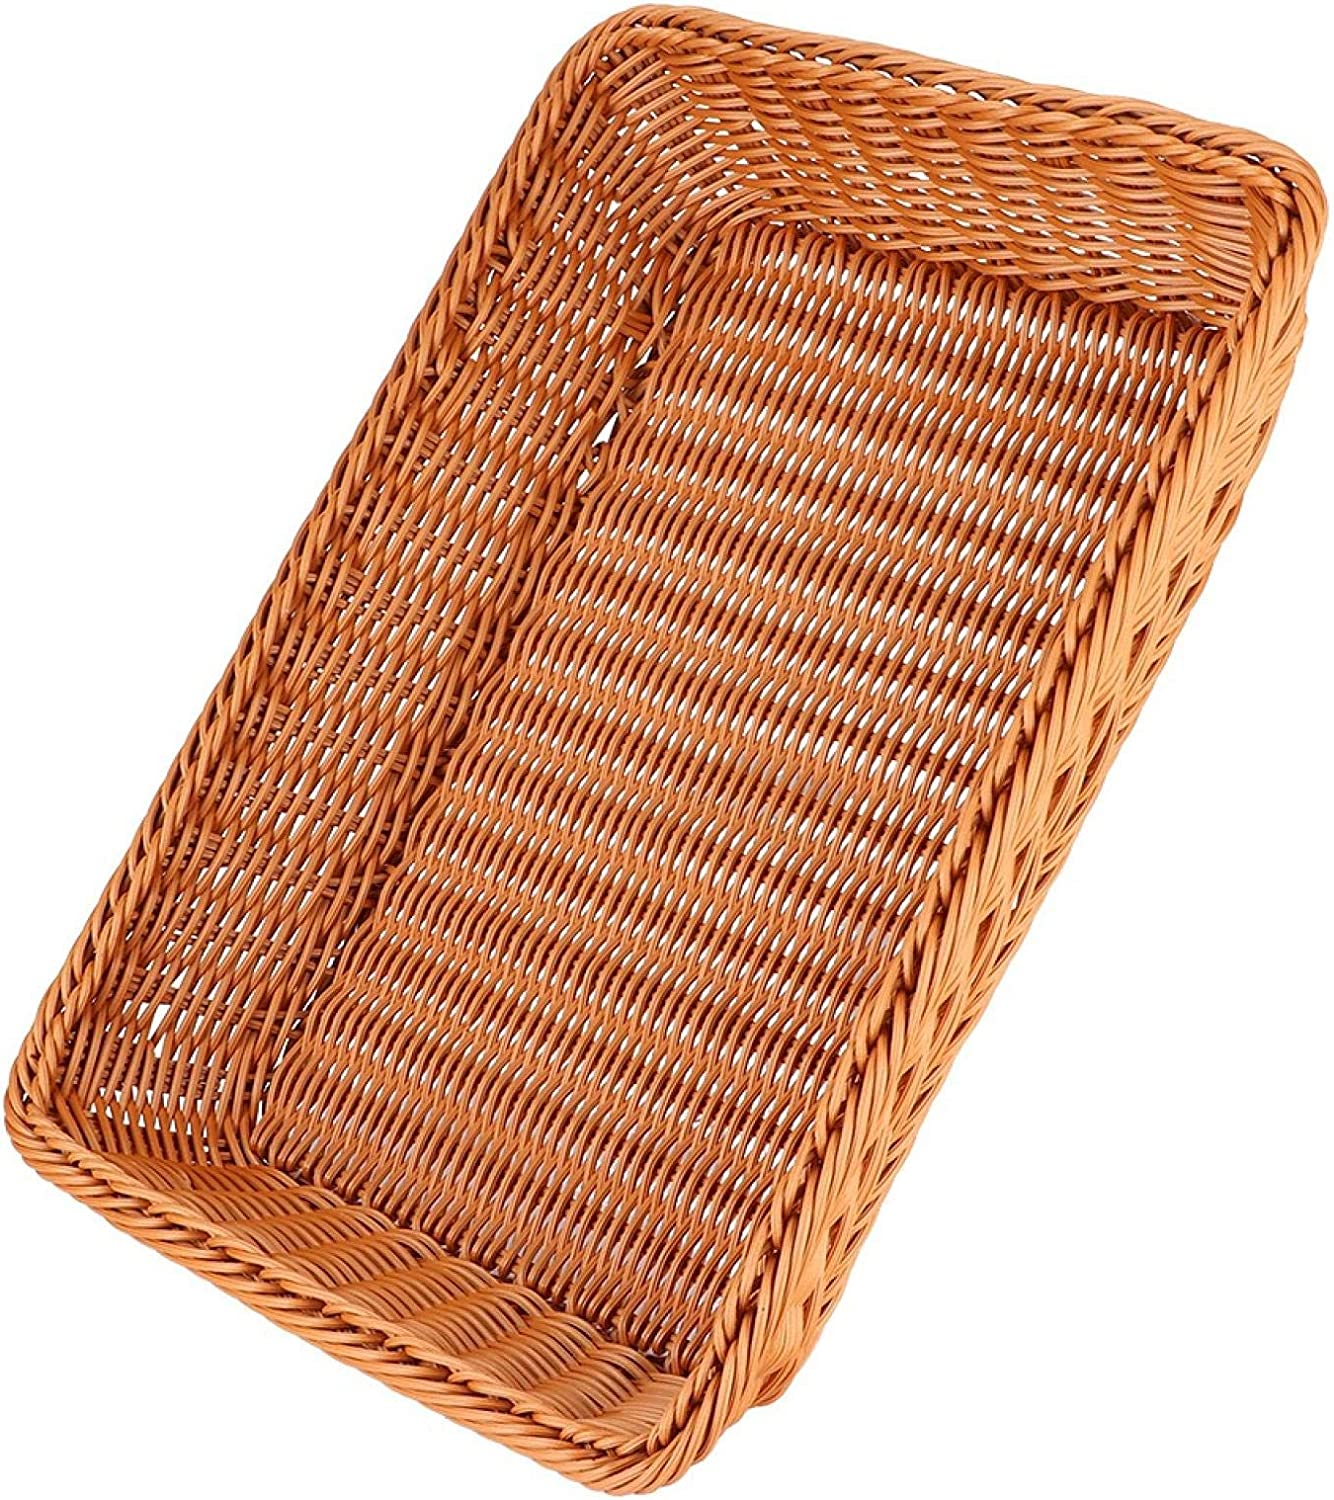 Xiangxin Fruit Basket, Storage Basket, Leak Proof Keep Secure Light Easy to Carry for Home Kitchen Everyday Use Housewife(Coffee Queen)